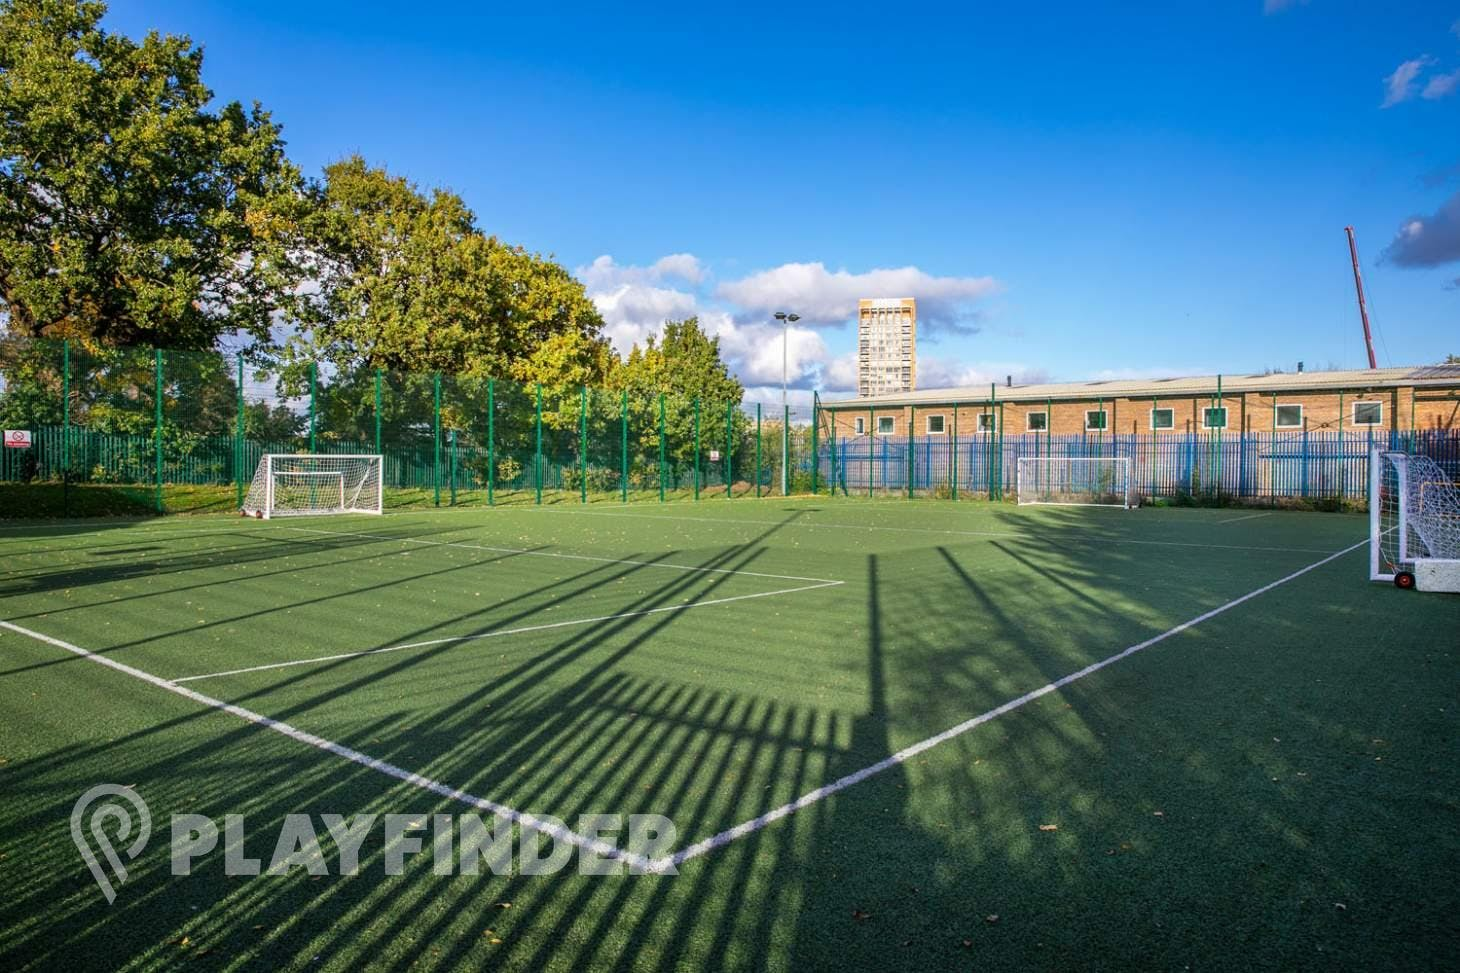 Princes Park Youth Football Club 6 a side | 3G Astroturf football pitch